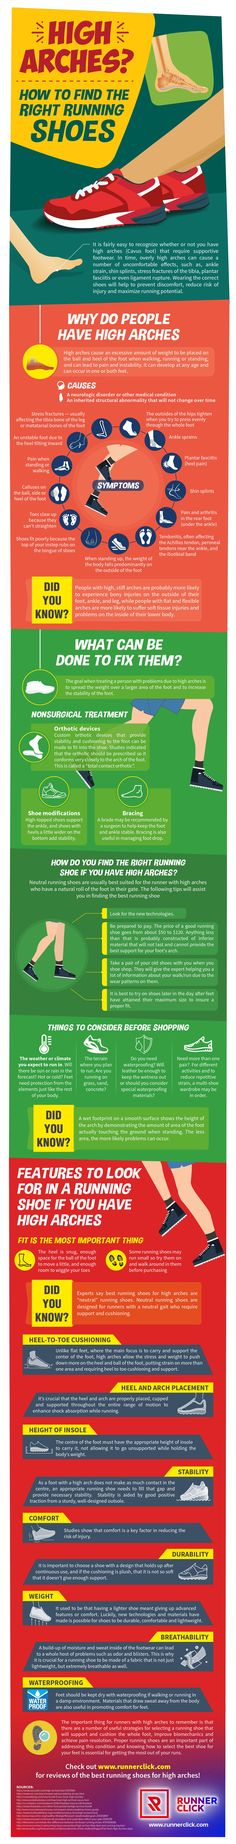 Have high arches? no problem. this IG will tell you everything you need to consider when running with high arches and what running shoes to purchase.